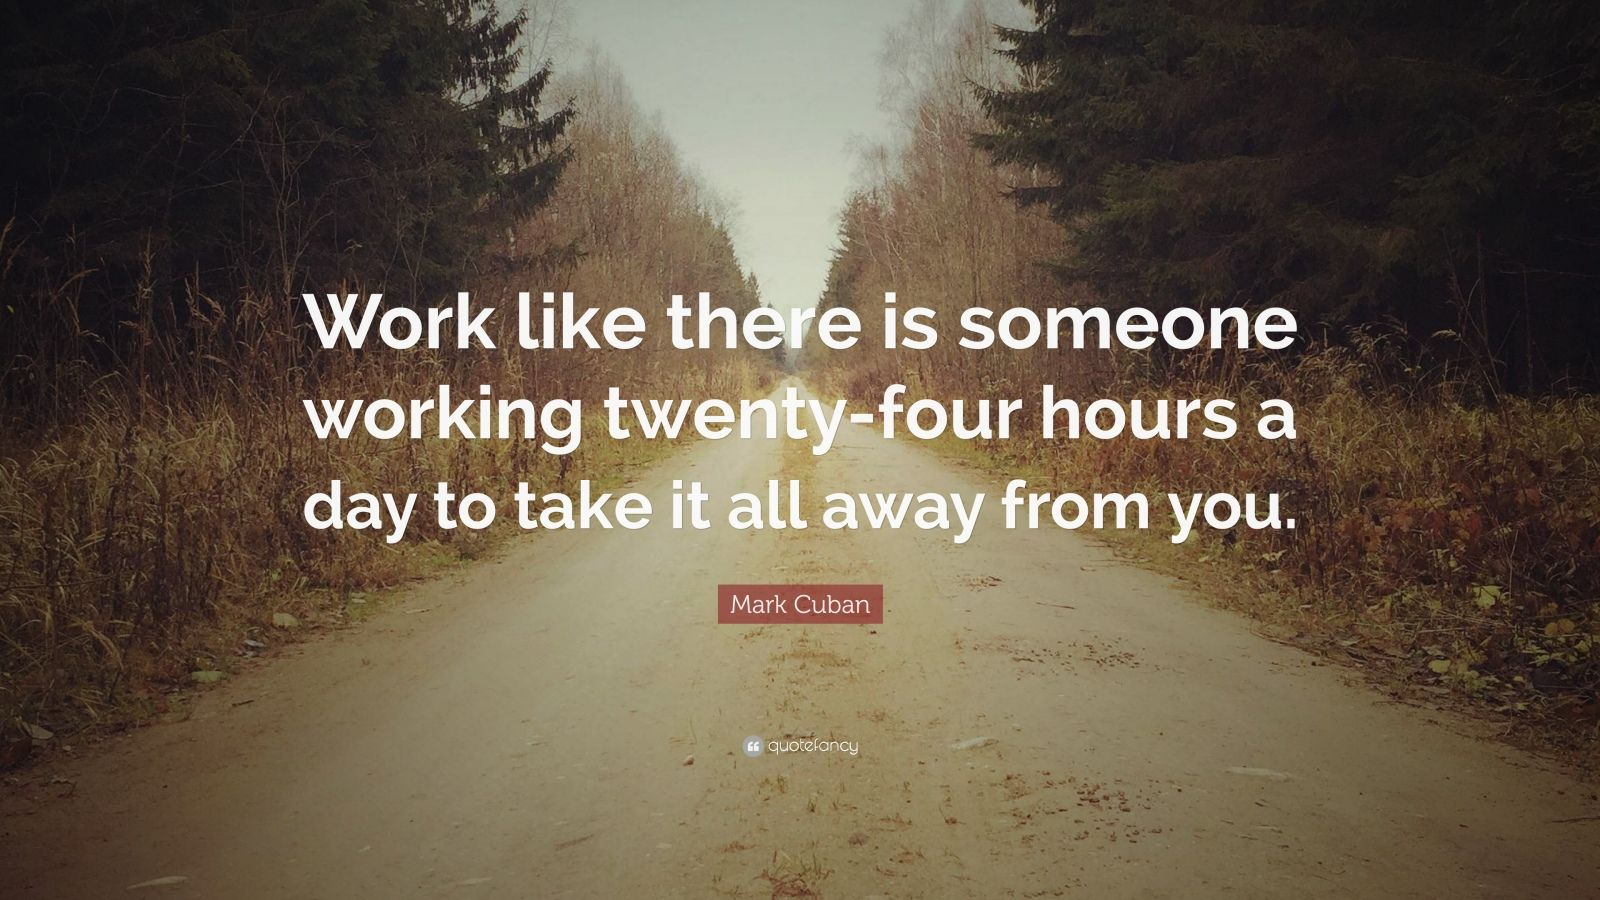 "Crazy Quotes: ""Work like there is someone working twenty-four hours a day to take it all away from you."" — Mark Cuban"